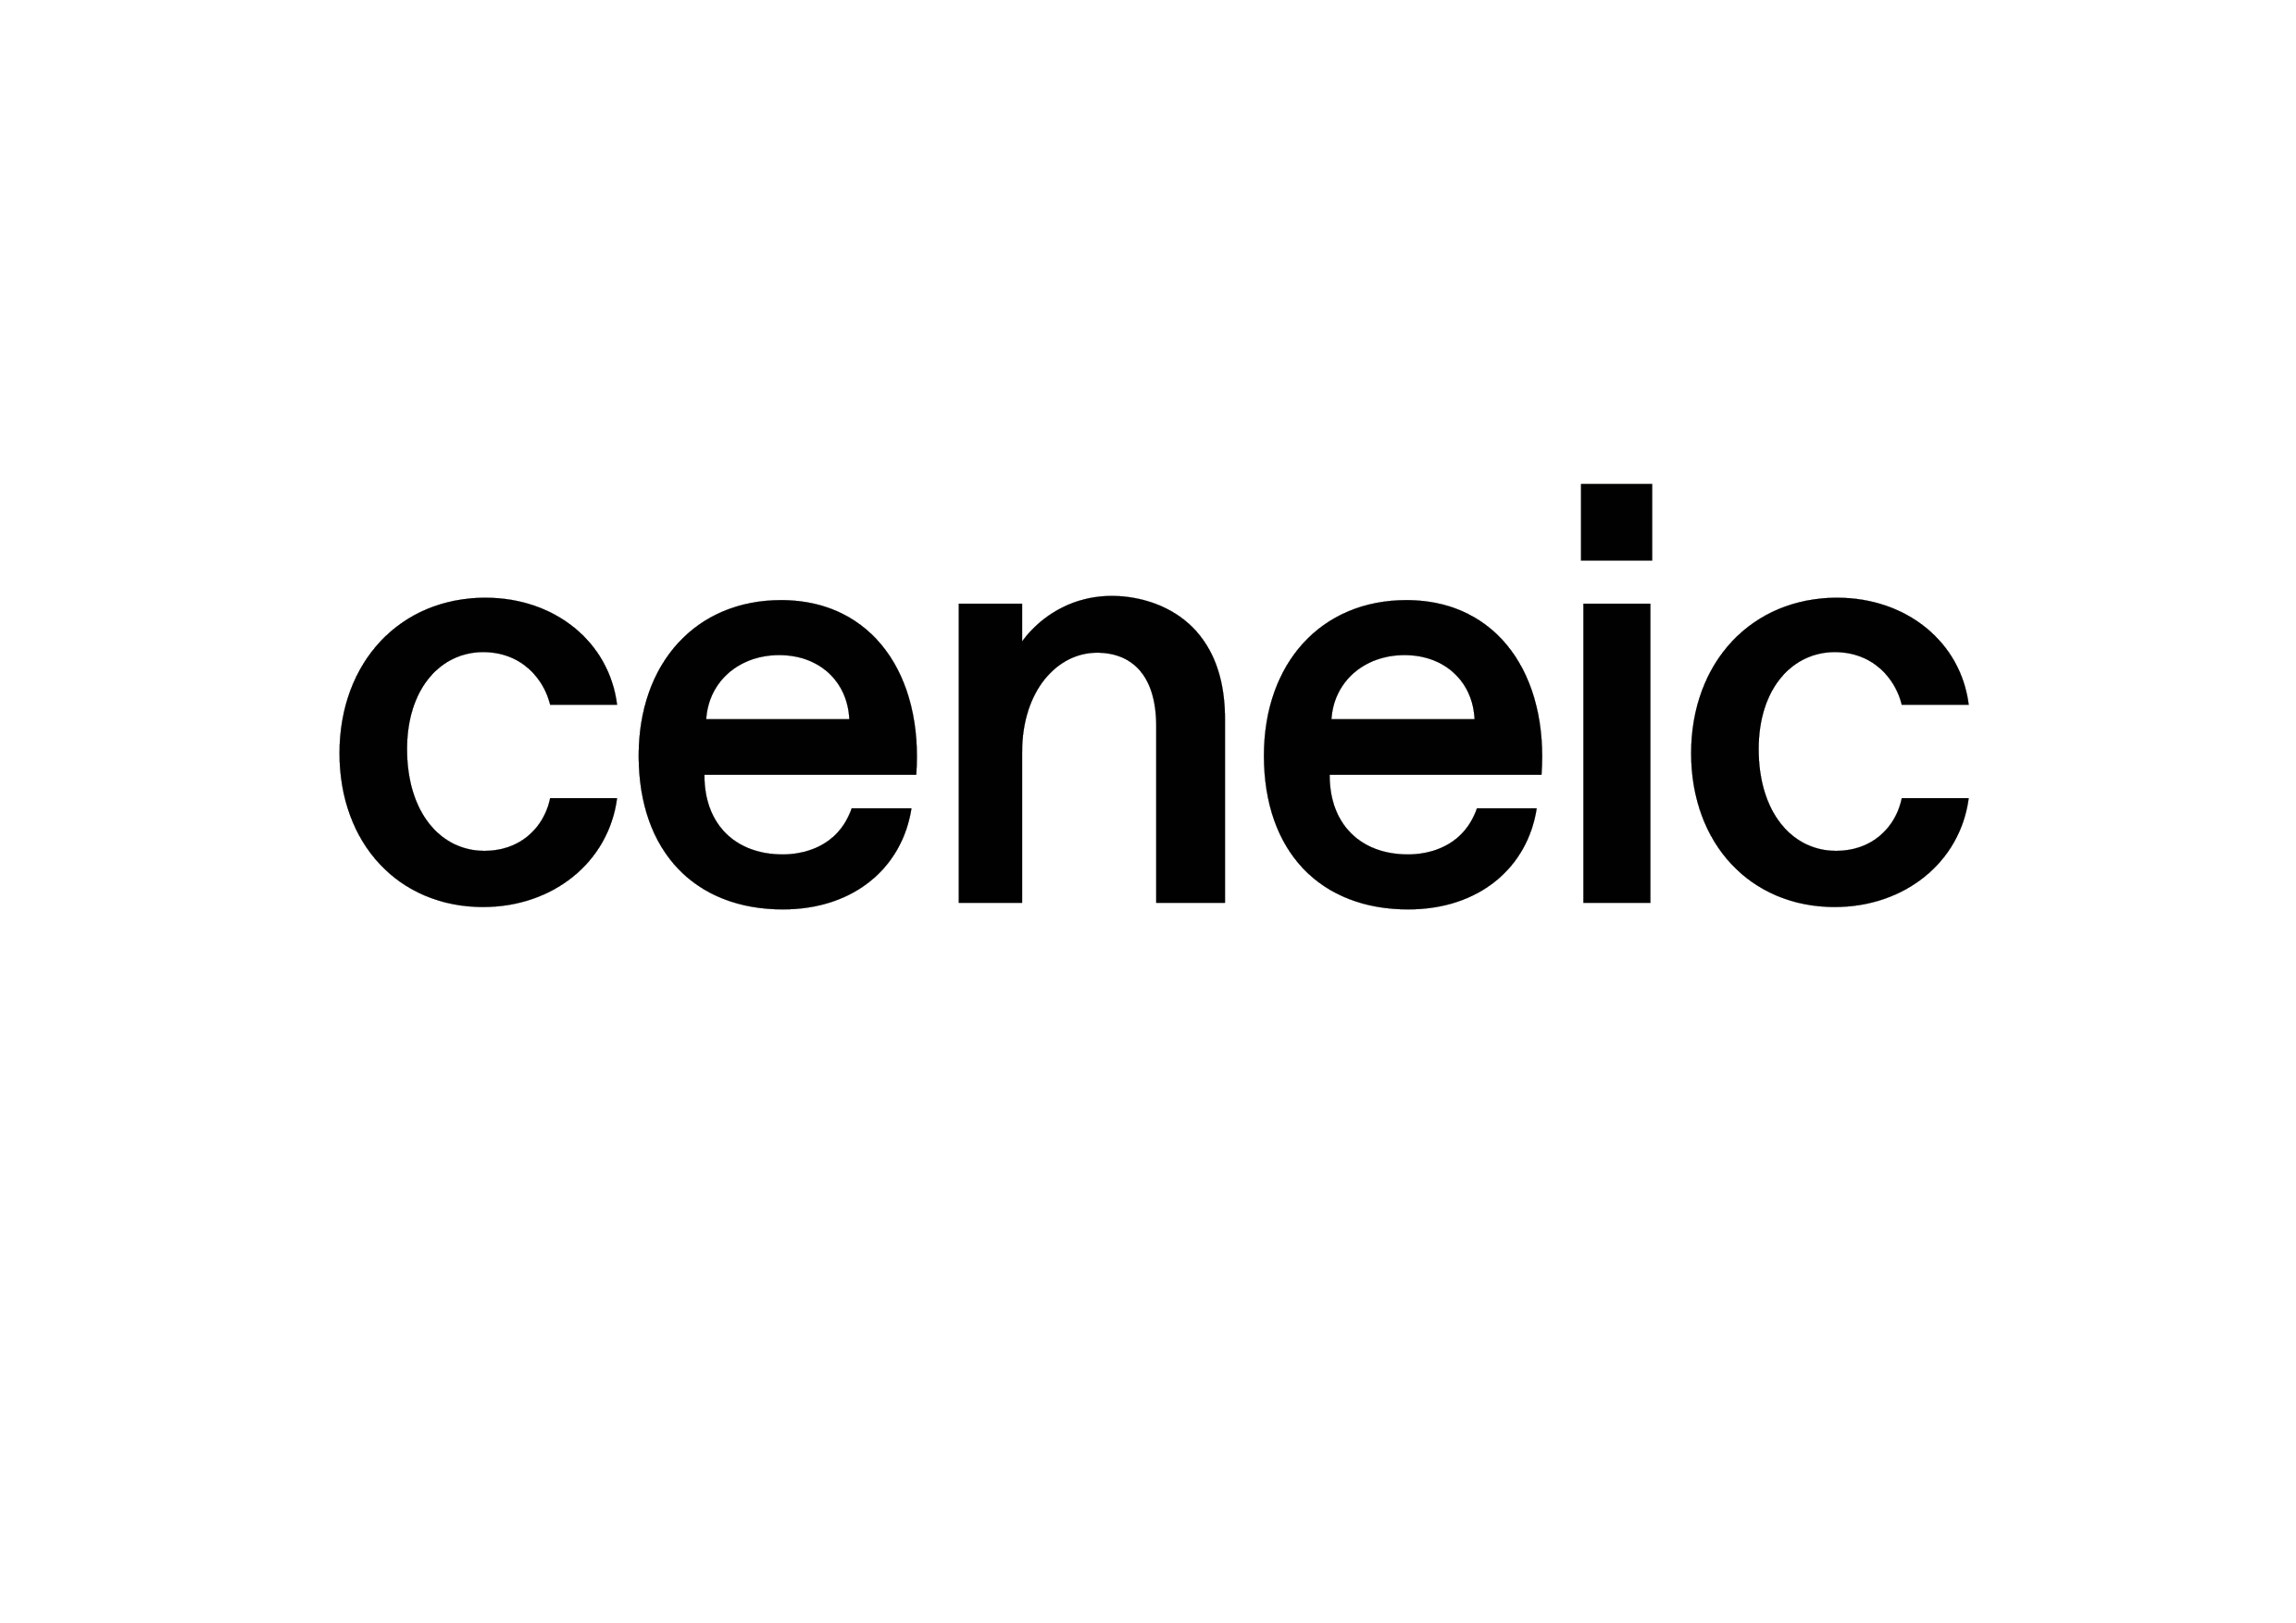 Ceneic is a London based agency promoting Biodesign, Biotechnology and the Circular Economy